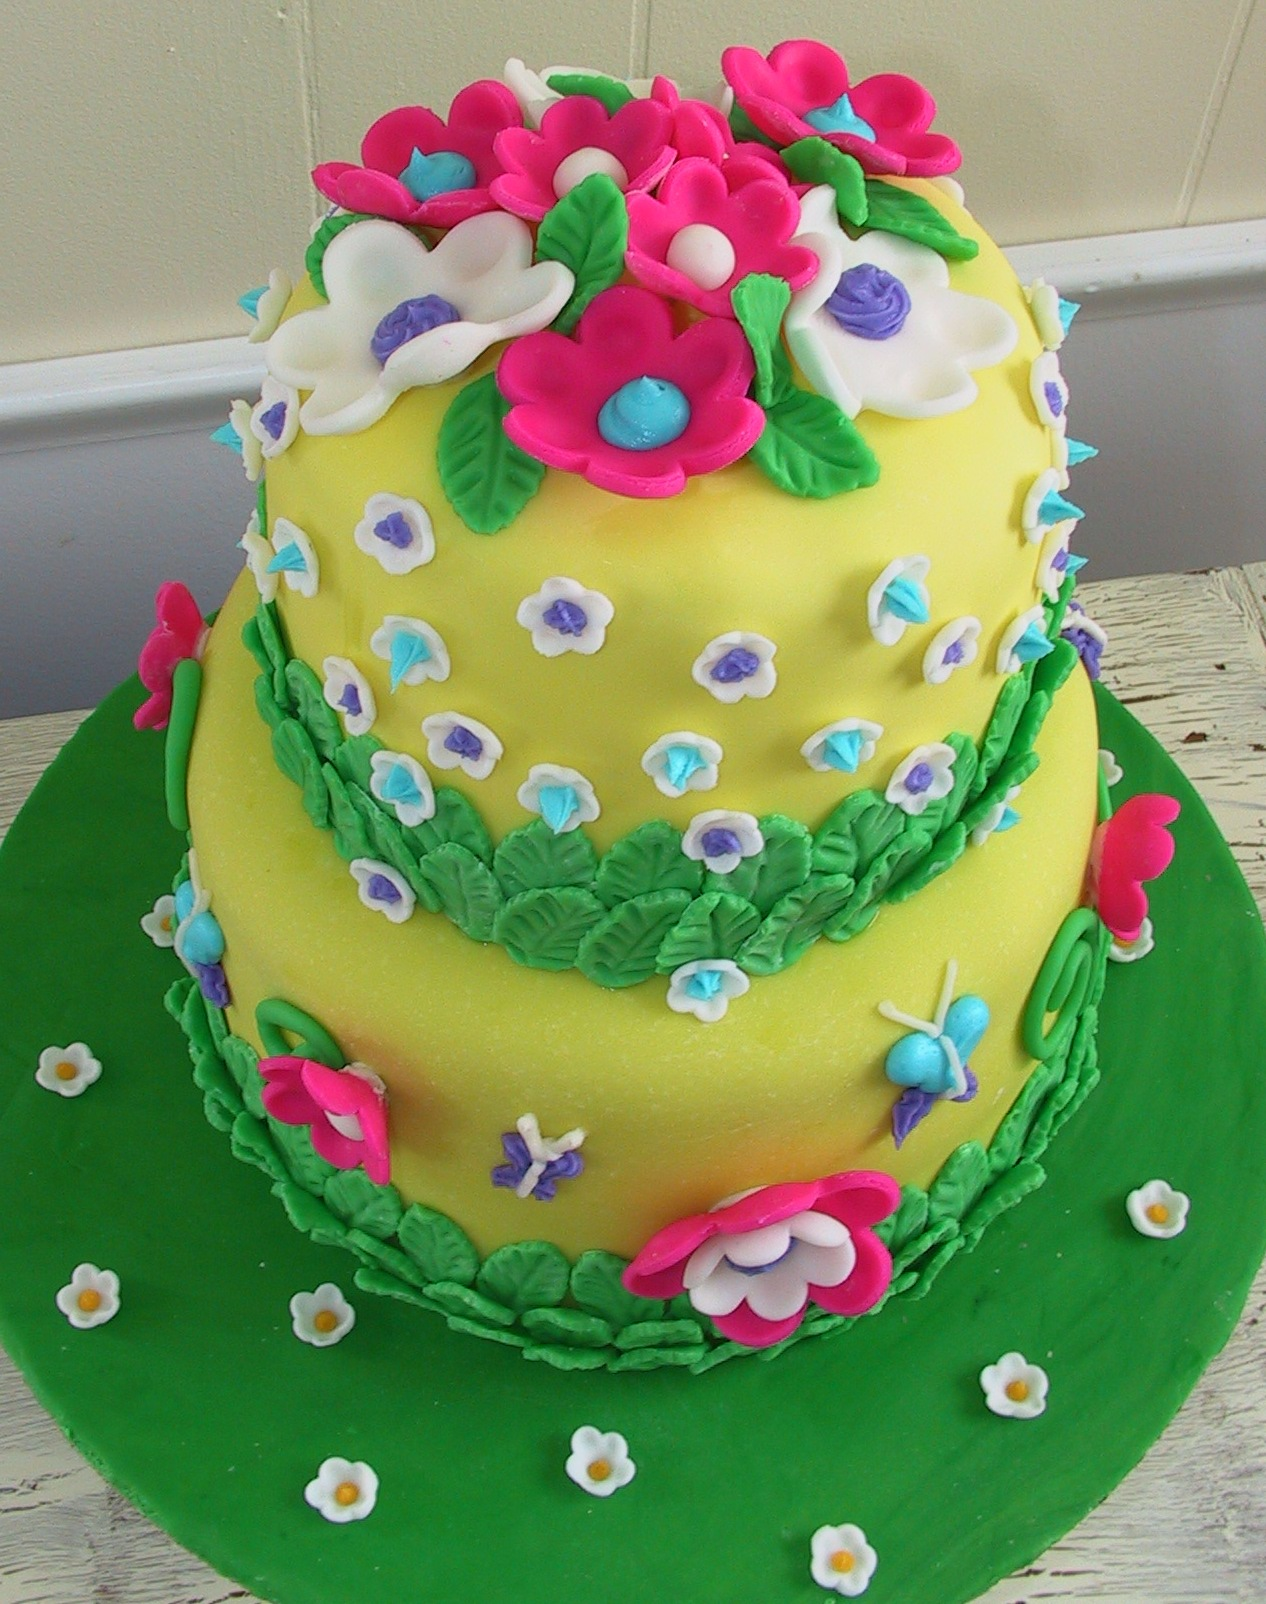 Best Jacs Of All Trades Cake Decorating 101 Part 5 Basic This Month